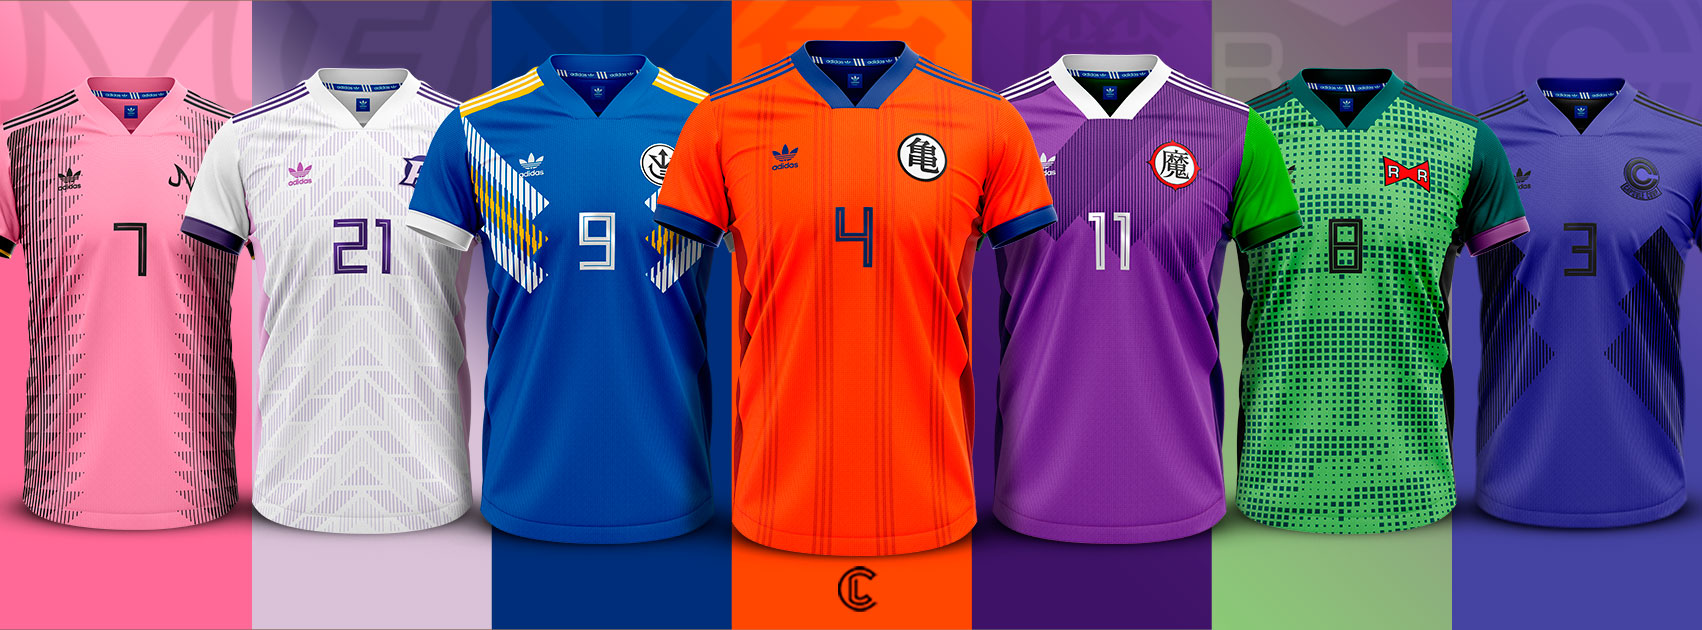 Dragon Ball Z maillots de football